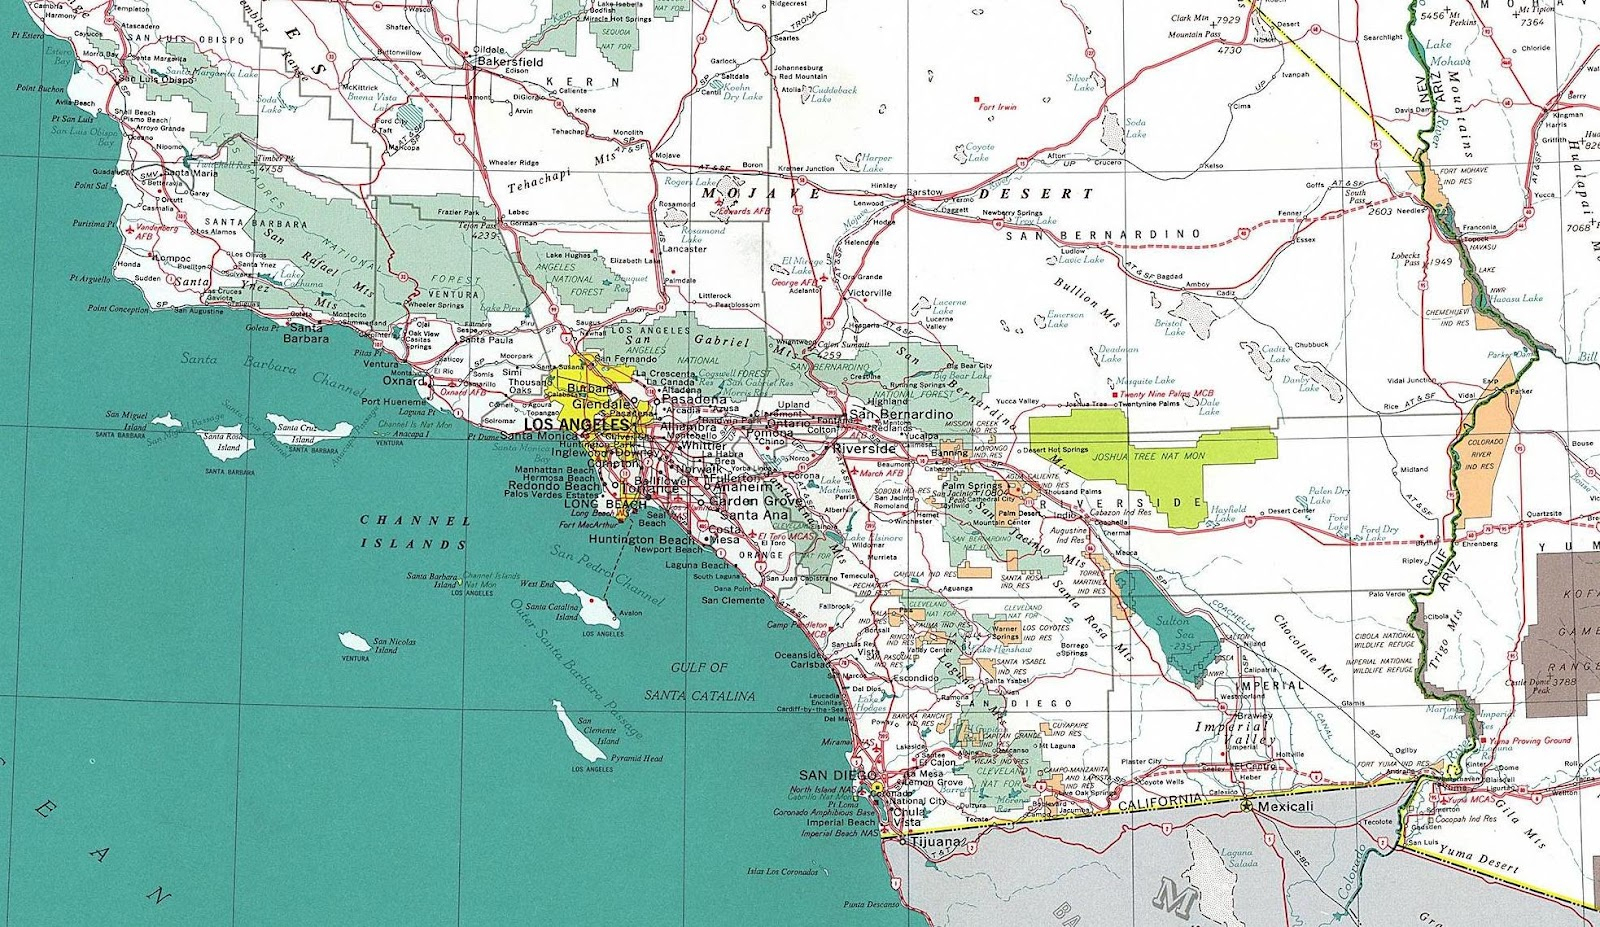 Online Maps: January 2009 - Online Map Of California